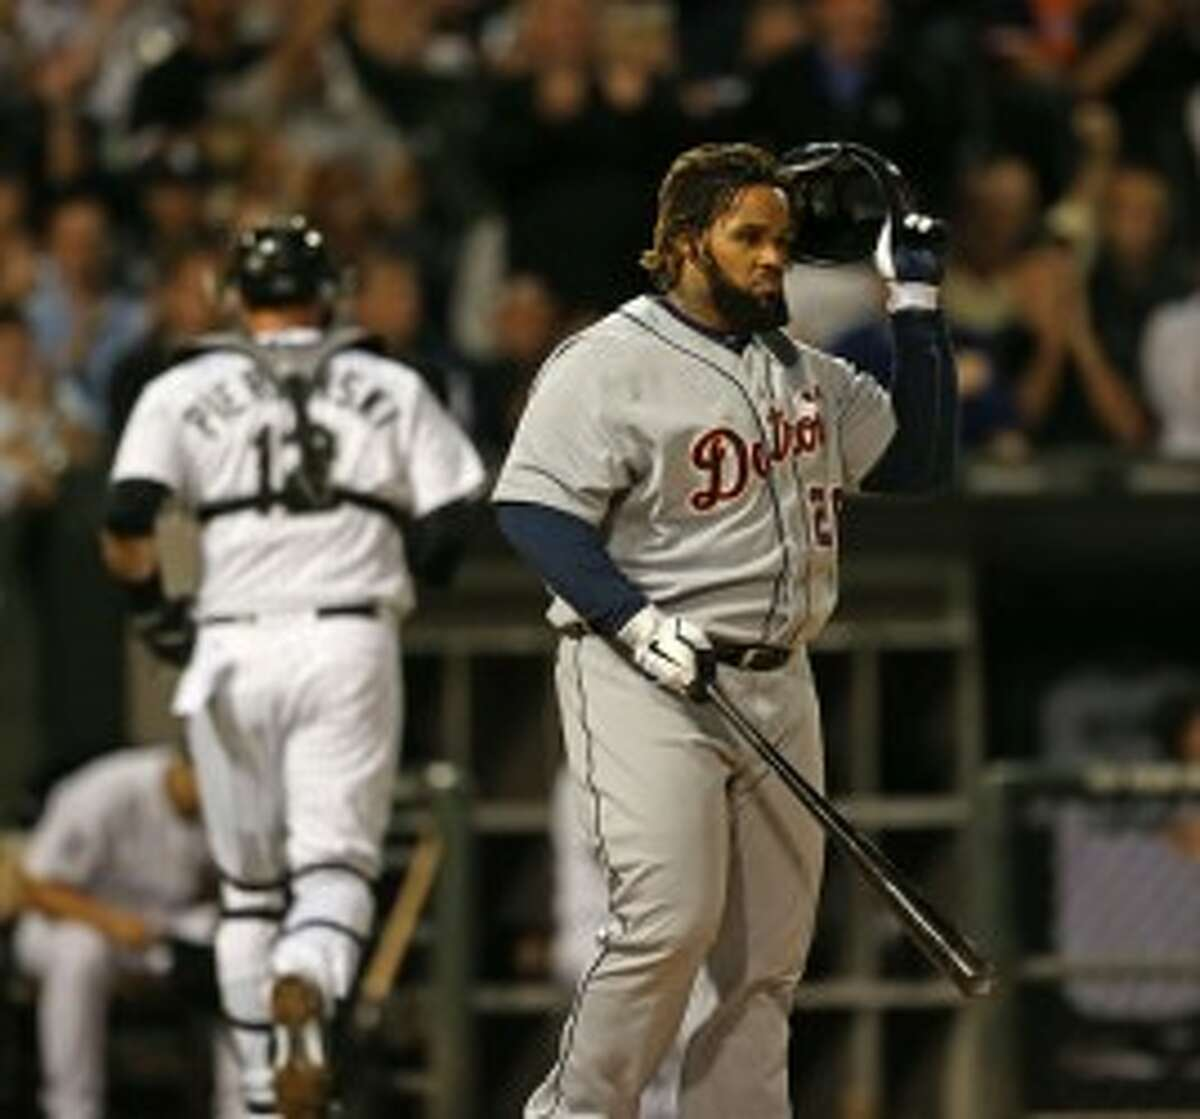 Tigers first baseman Prince Fielder reacts after striking out against the White Sox on Monday. (Nuccio DiNuzzo/Chicago Tribune/MCT)